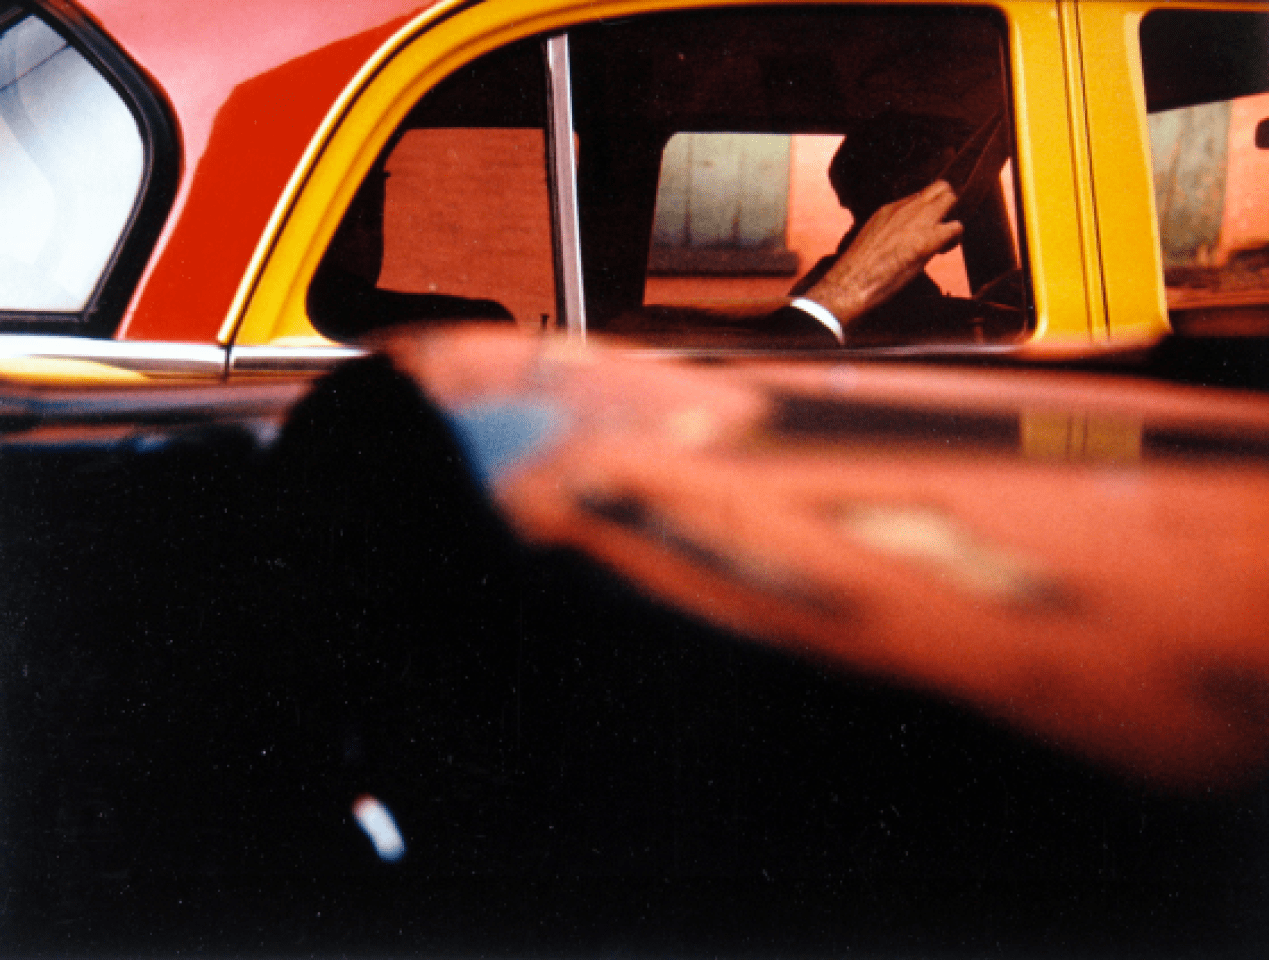 51bf293c83530Saul_Leiter_Taxi,_1957.png